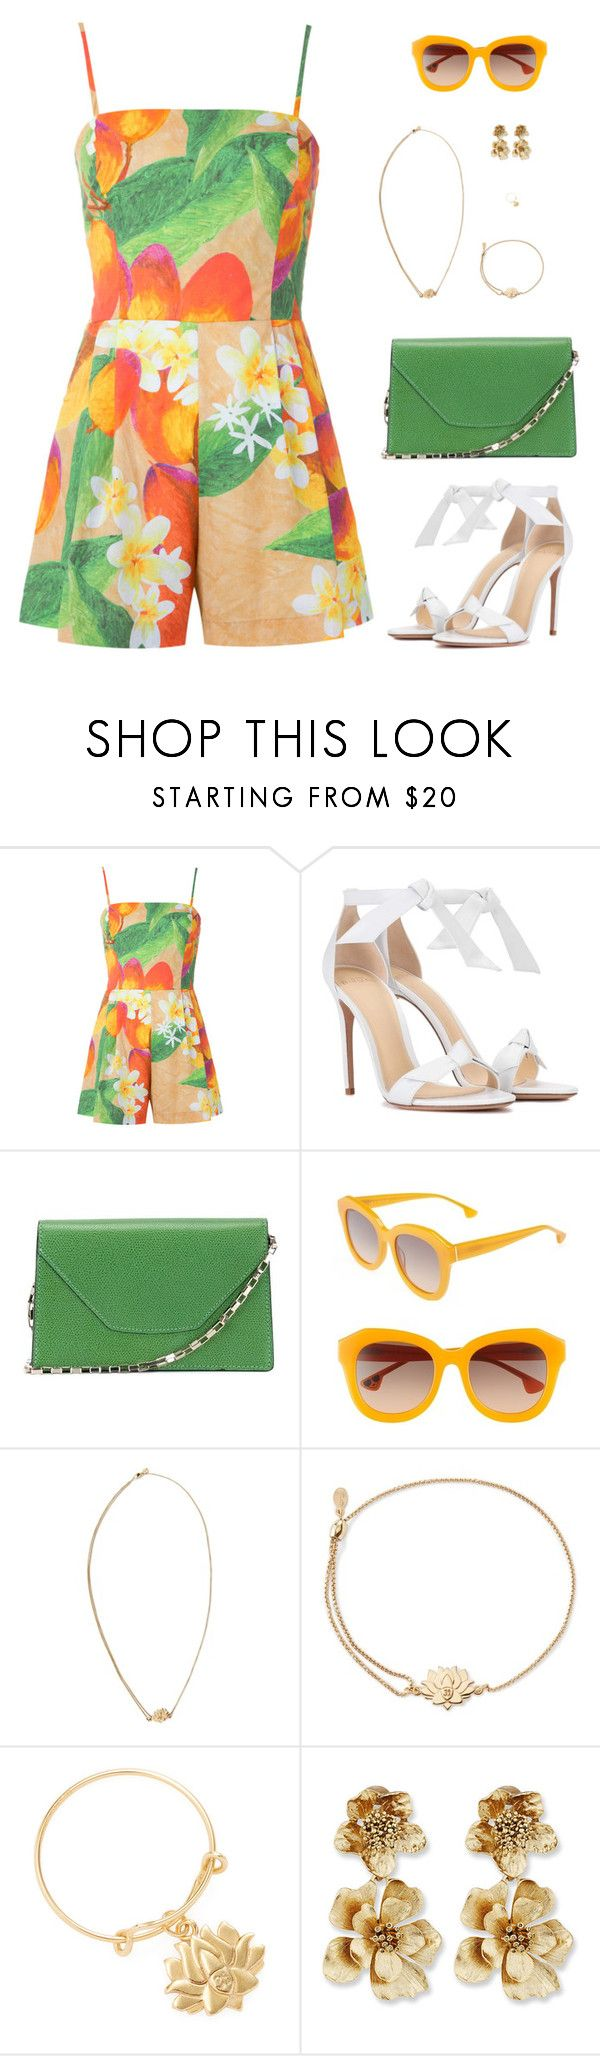 """Sin título #4948"" by mdmsb ❤ liked on Polyvore featuring Isolda, Alexandre Birman, Valextra, Alice + Olivia, Alex and Ani and Oscar de la Renta"